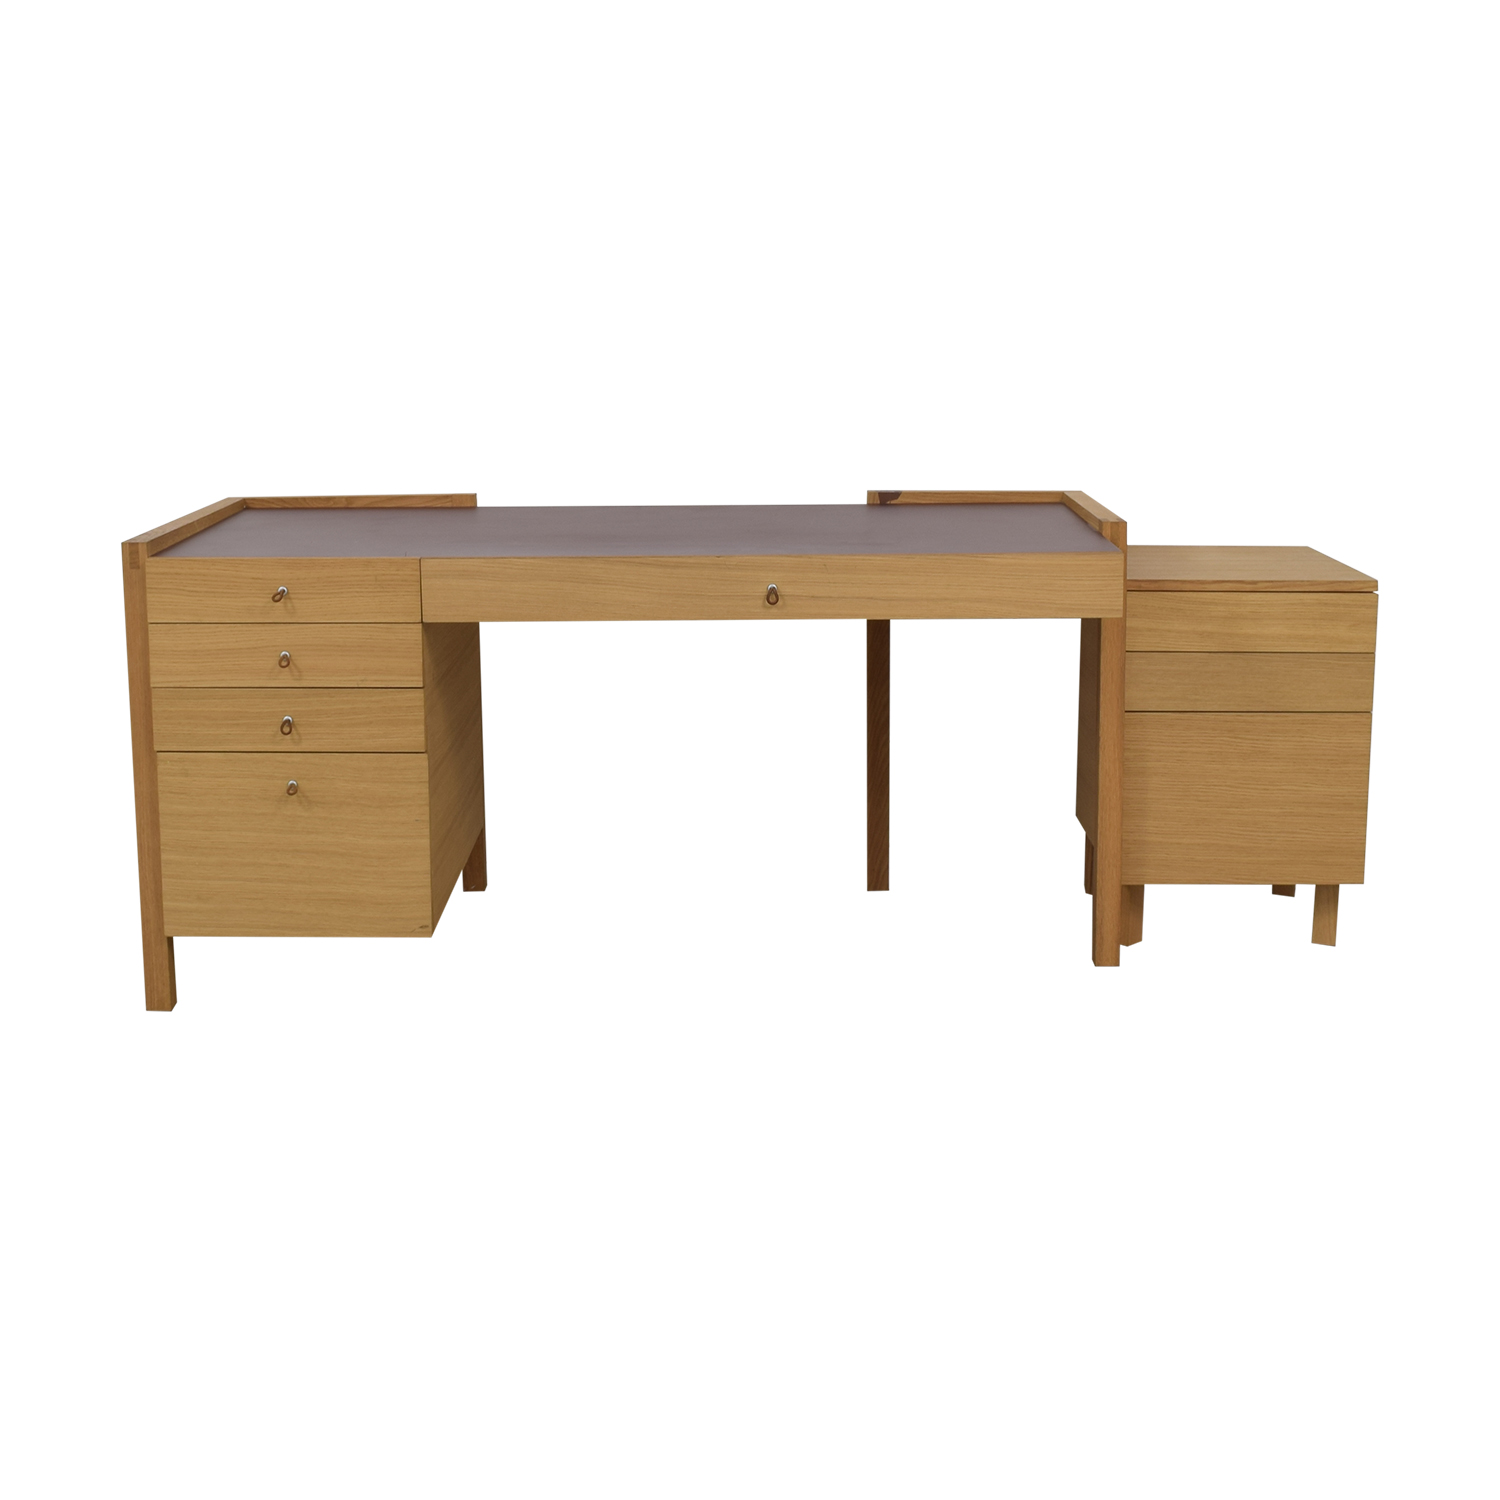 Eight-Drawer Oak Desk and Side Table dimensions